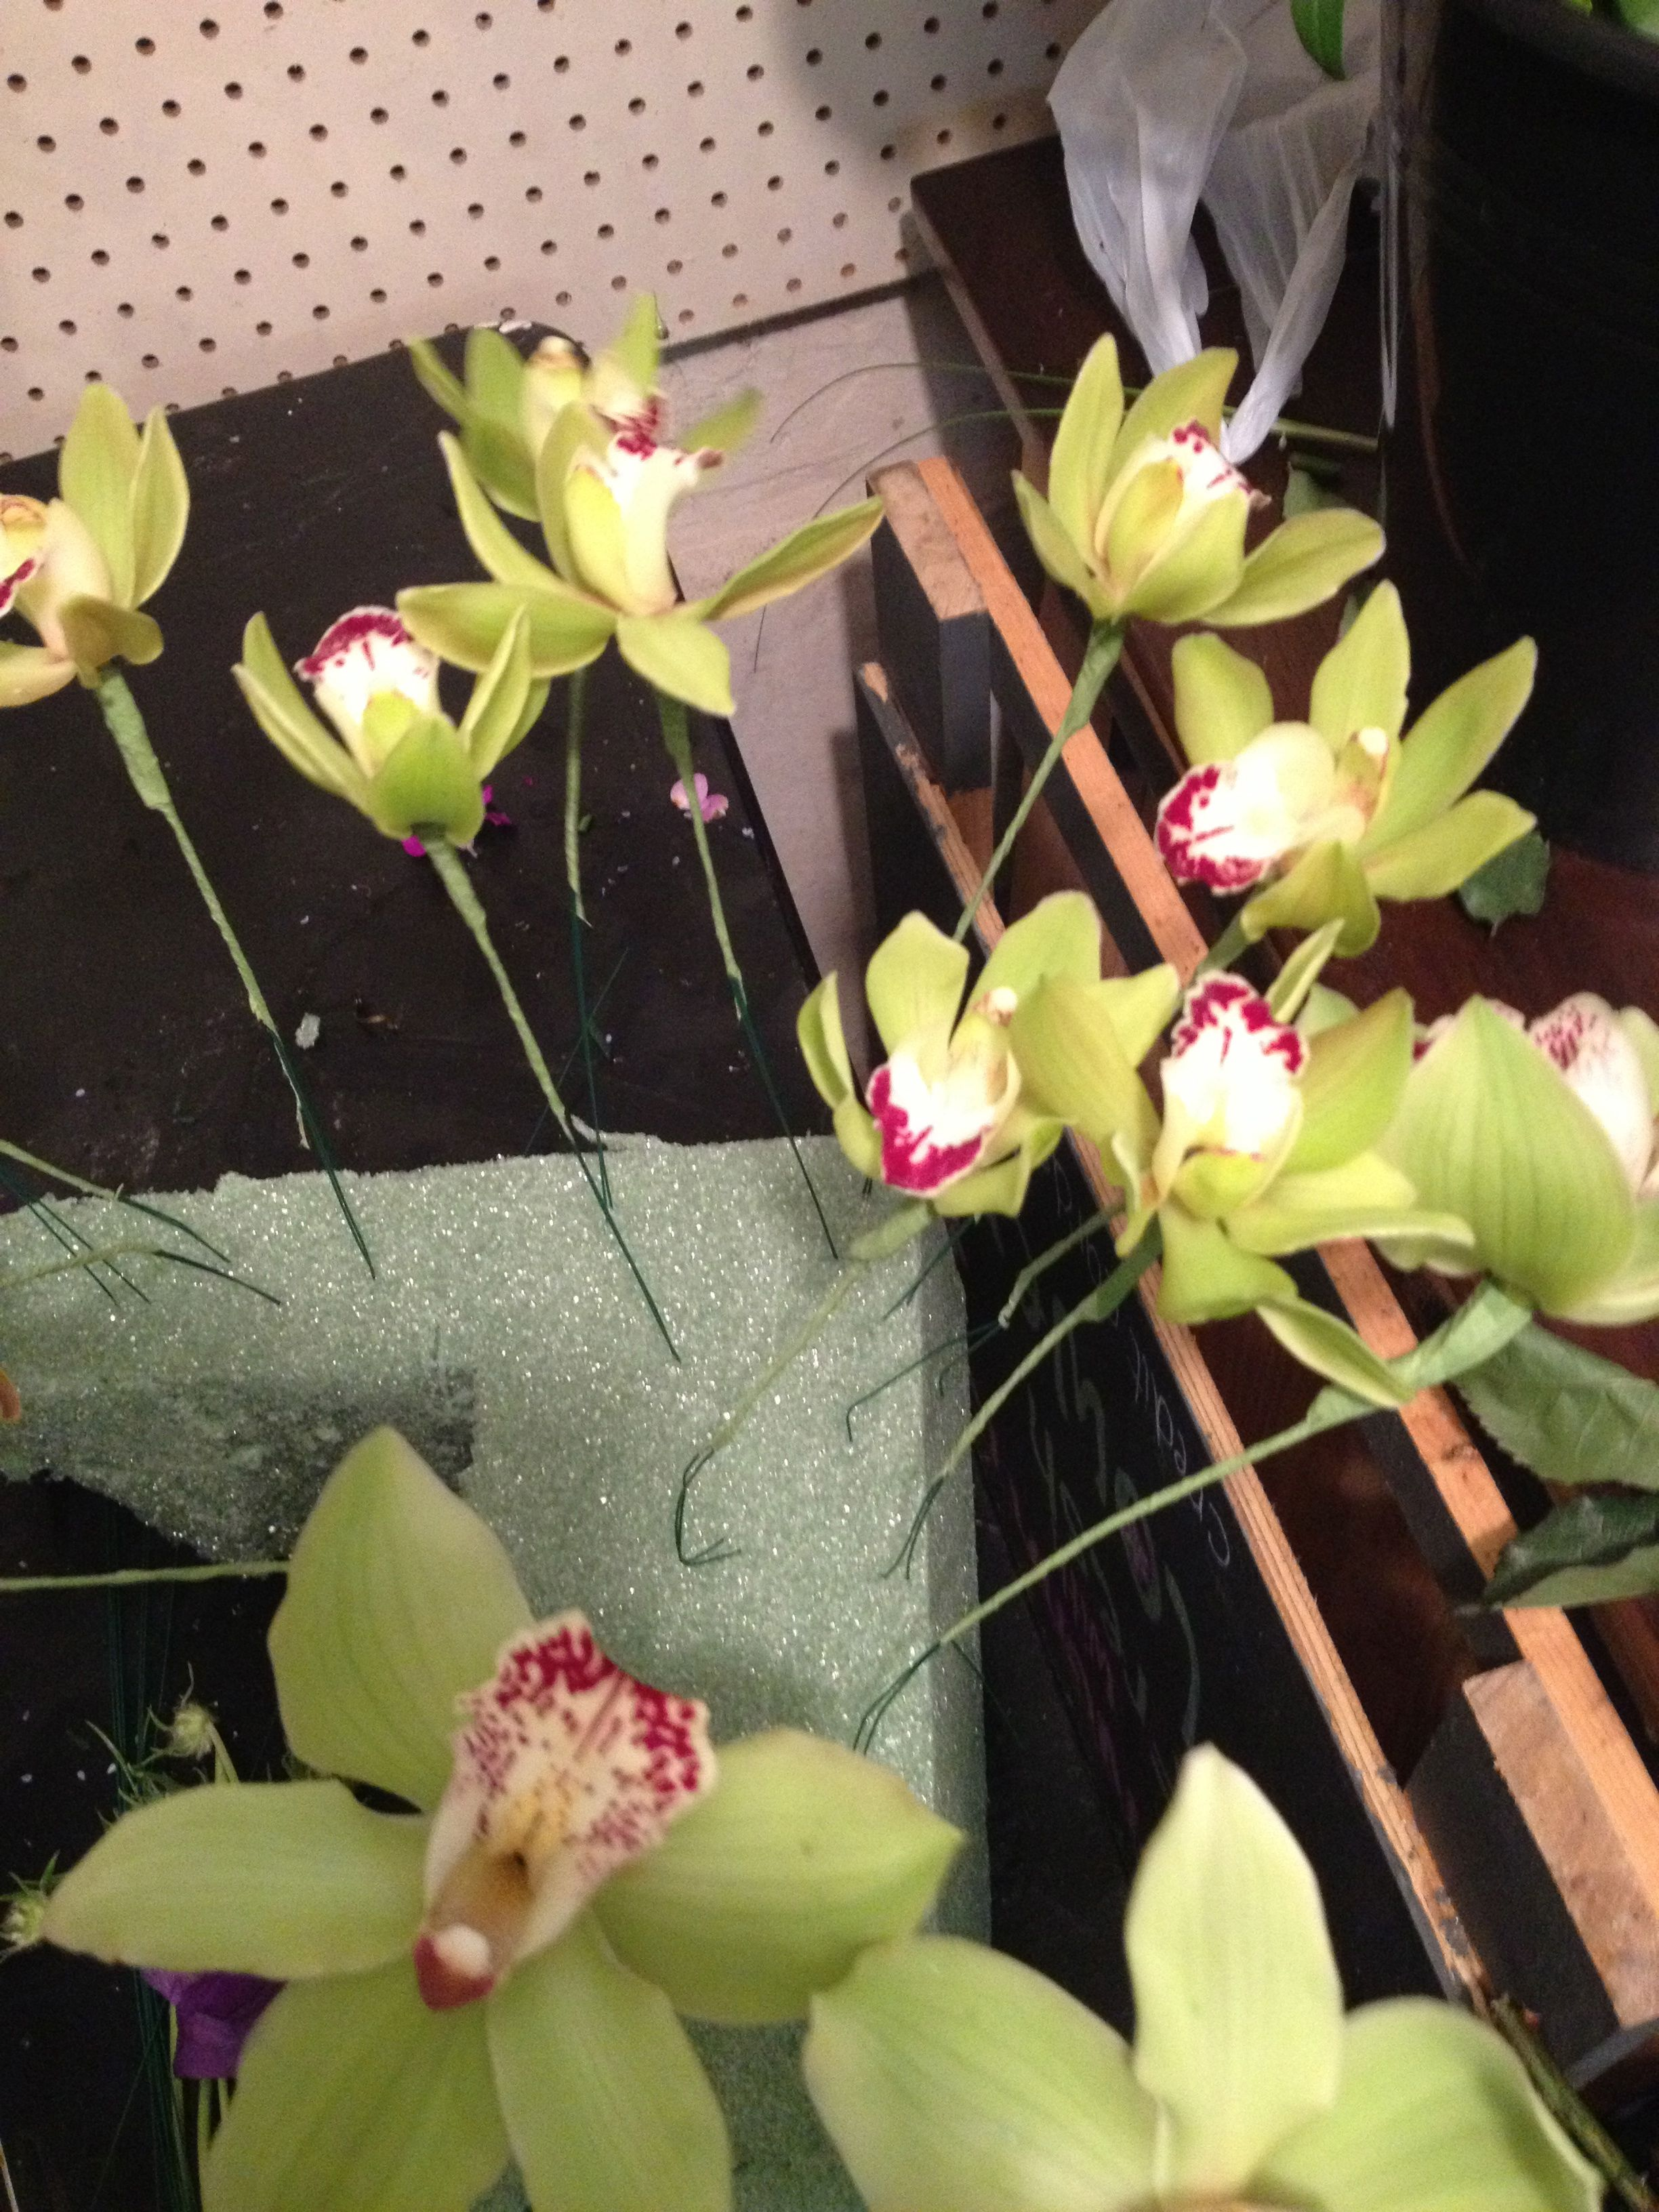 Cymbidium orchids wired and ready to go into the bridesmaids and bridal bouquet